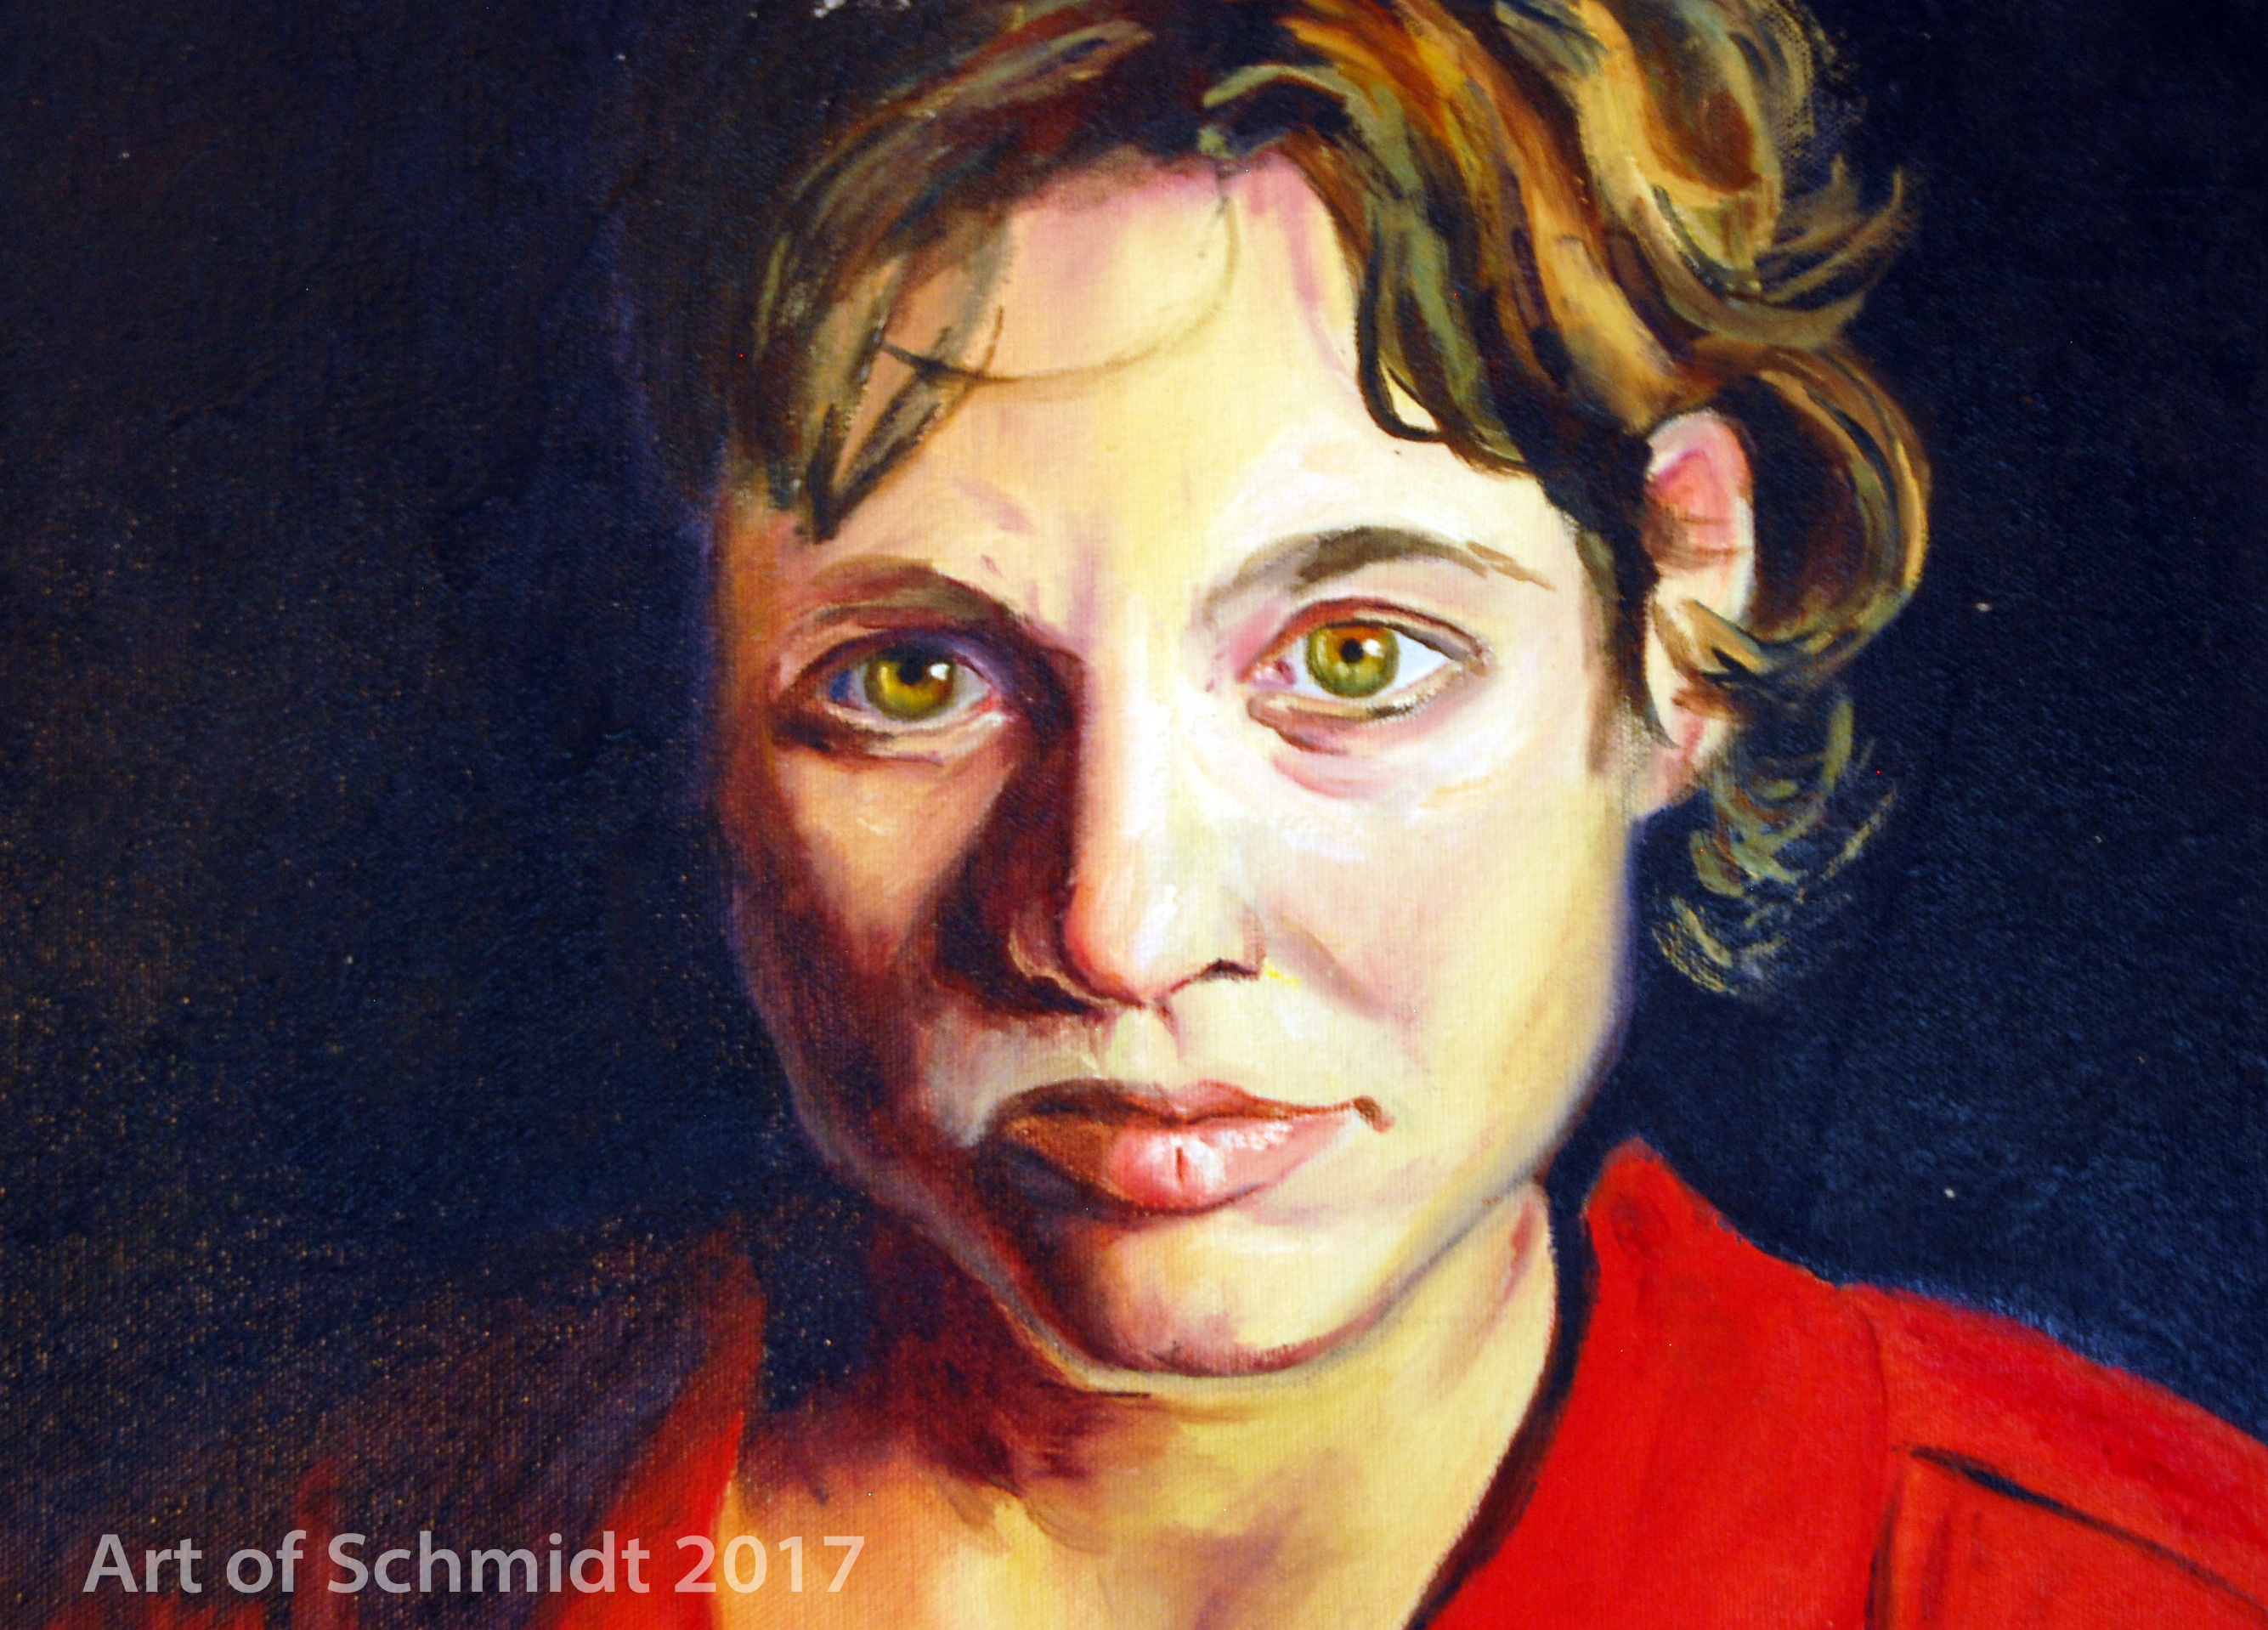 Self-Portrait in red